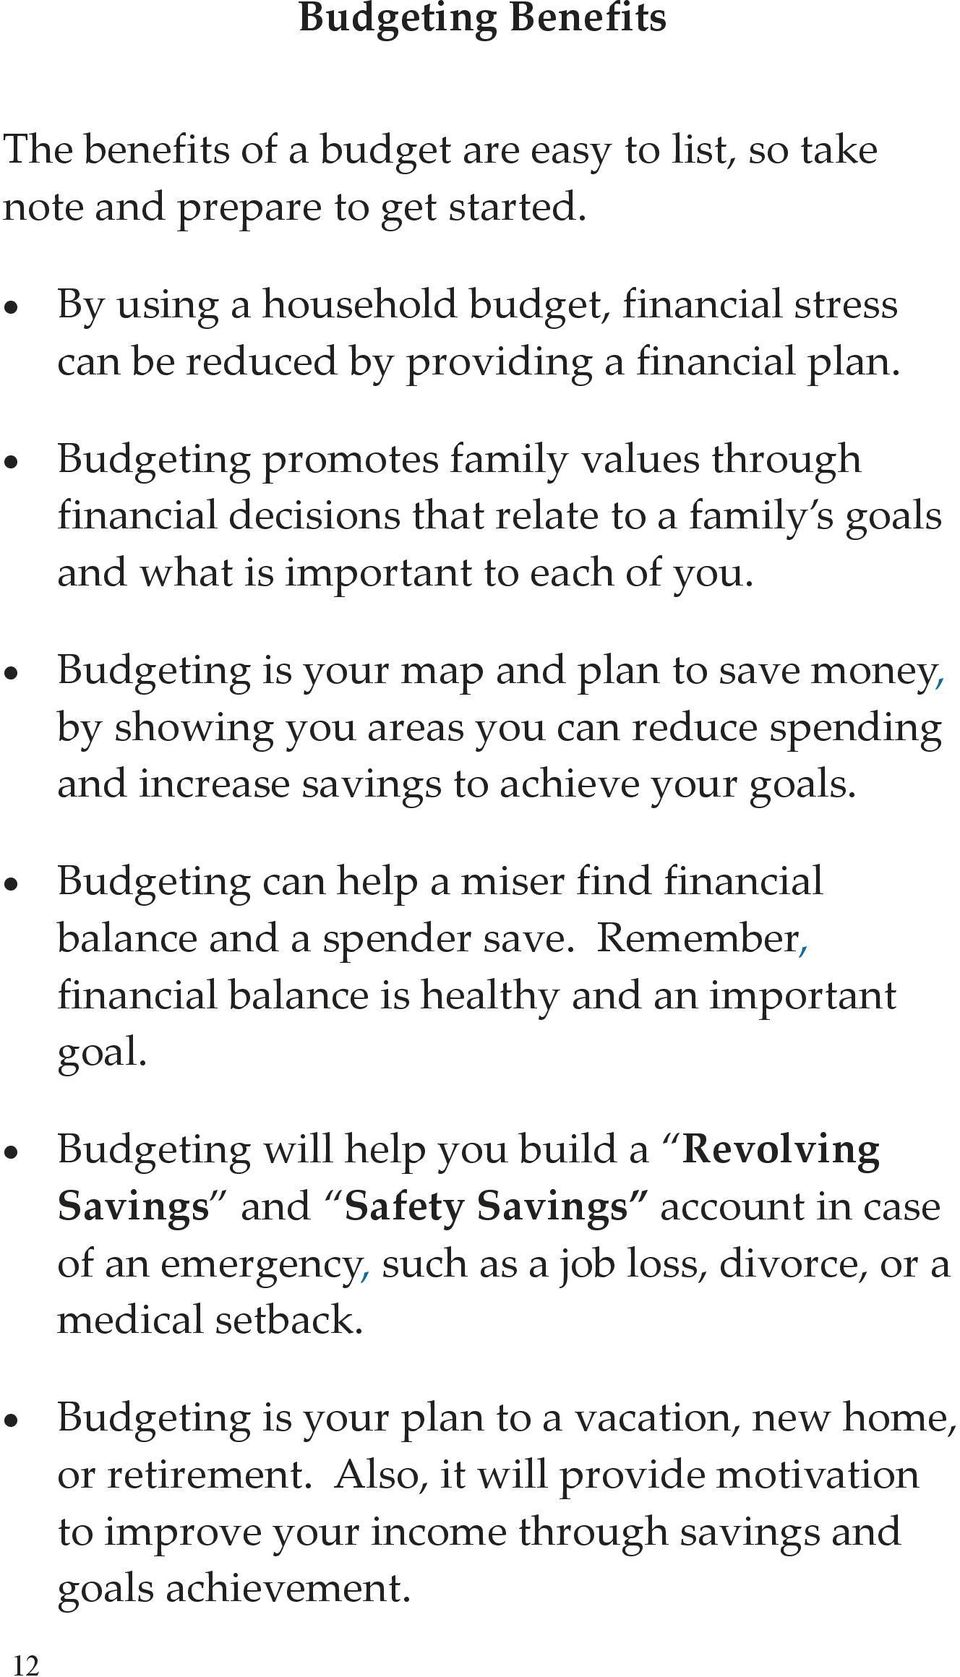 Budgeting is your map and plan to save money, by showing you areas you can reduce spending and increase savings to achieve your goals.